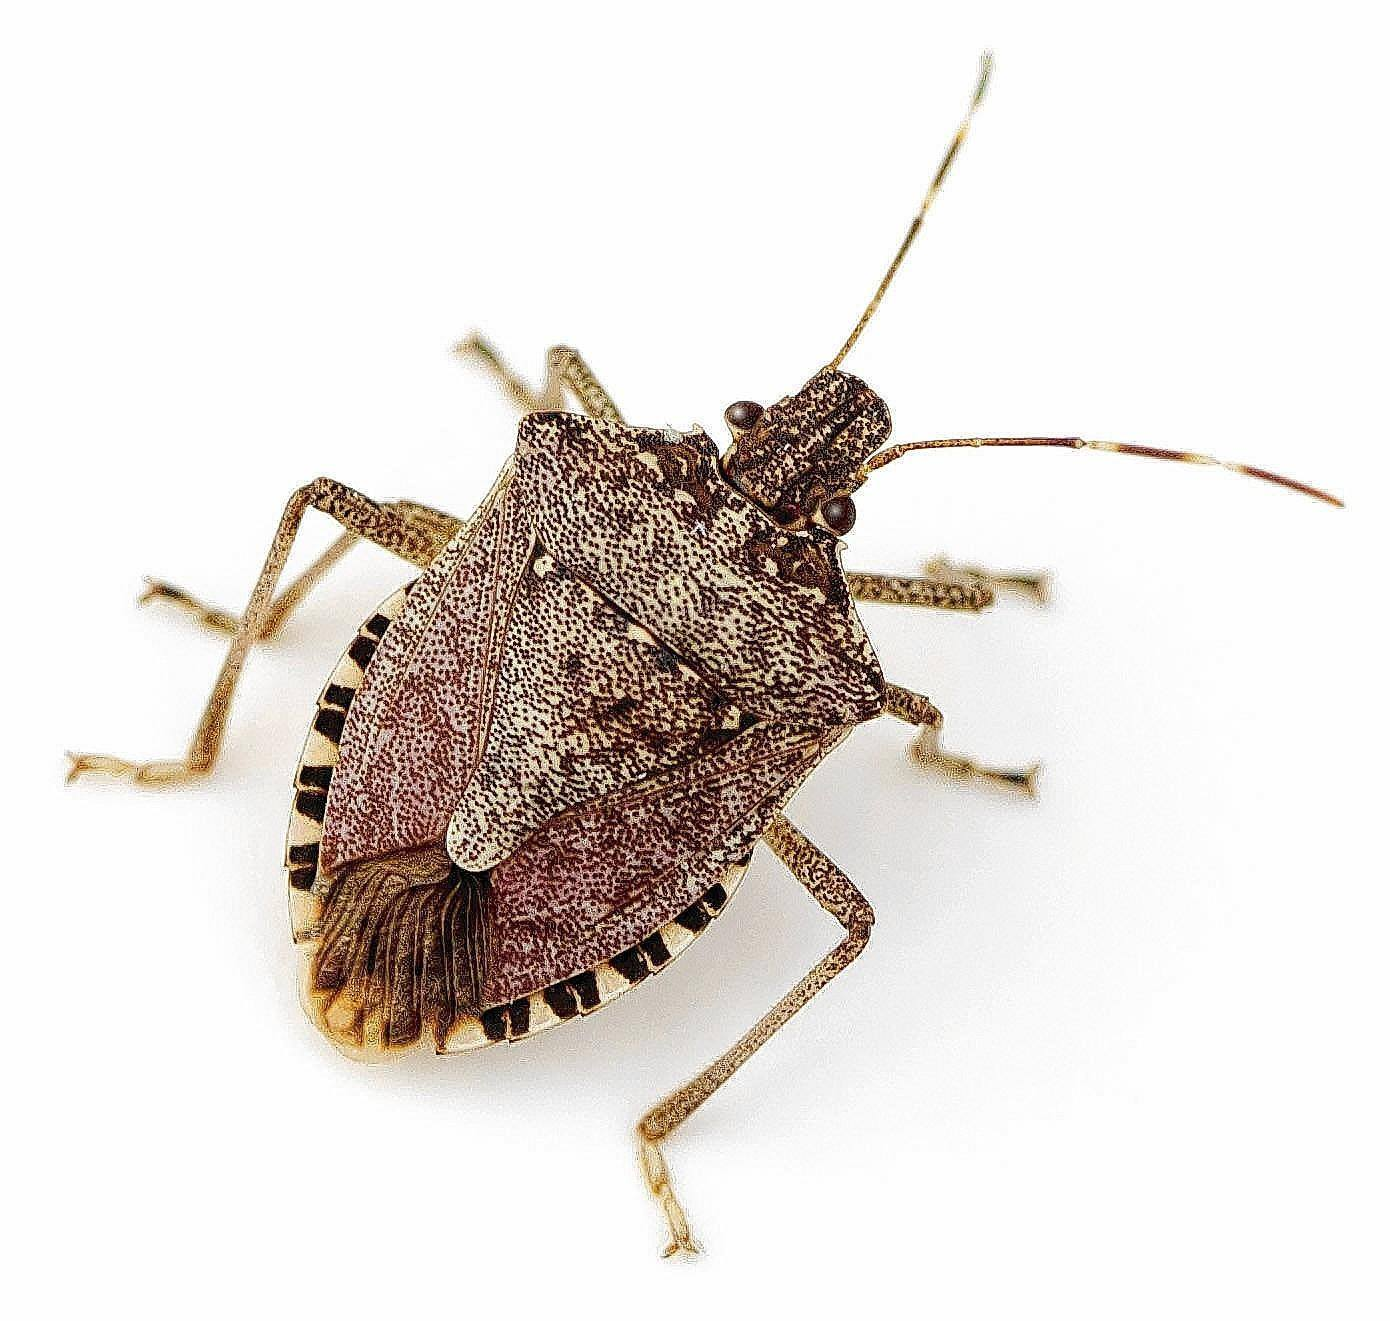 Stink bug isolated on the white.